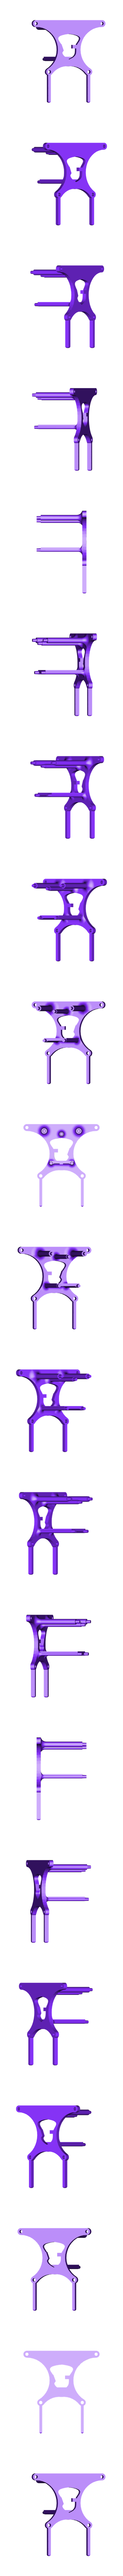 flying machine - chassis-1.STL Download STL file ornithopter • Template to 3D print, younique2097